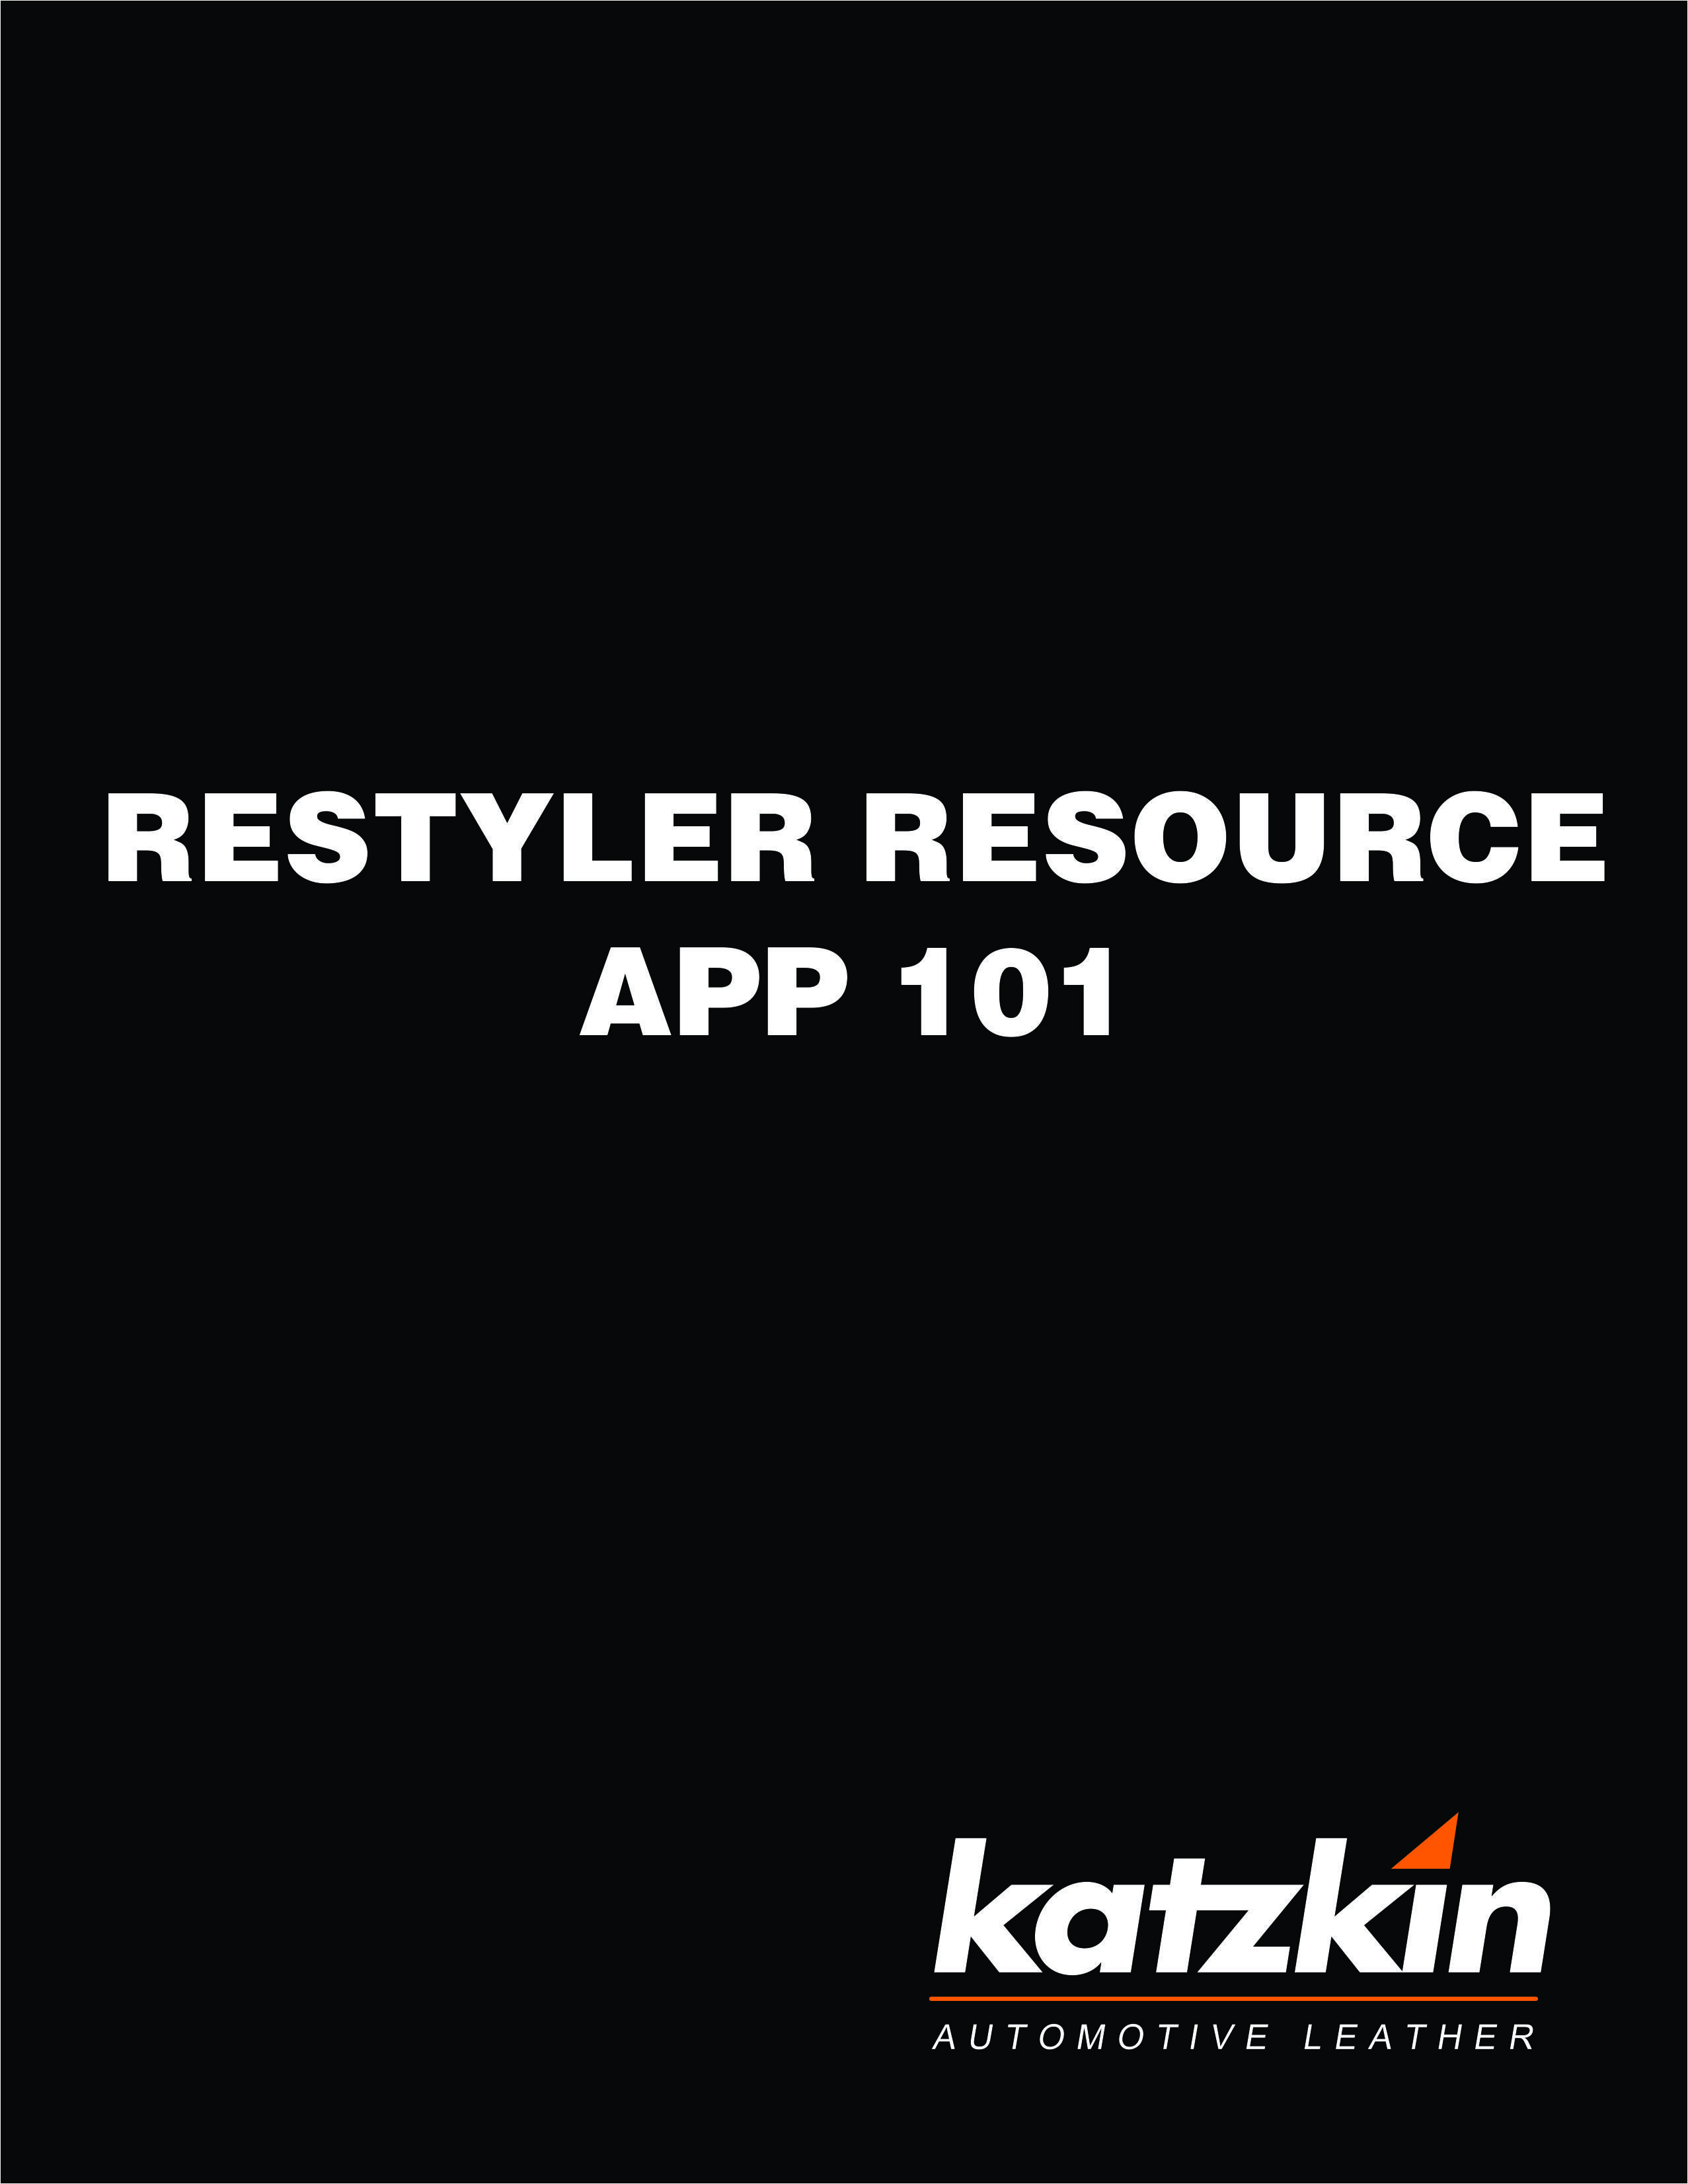 Katzkin Restyler Resource App 101